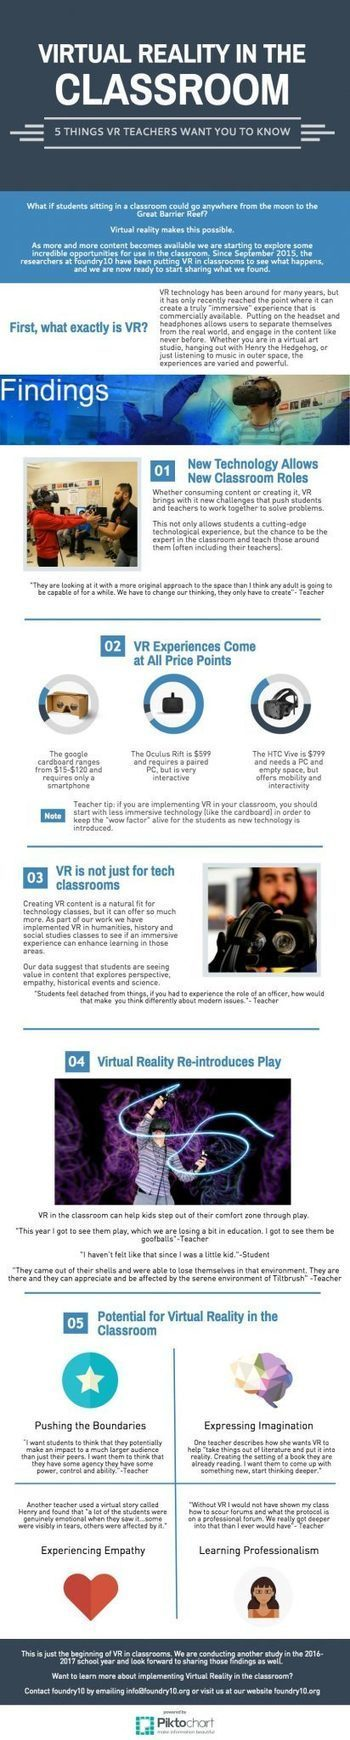 Virtual Reality in the Classroom Infographic | Learning Bytes from The Consultants-E | Scoop.it